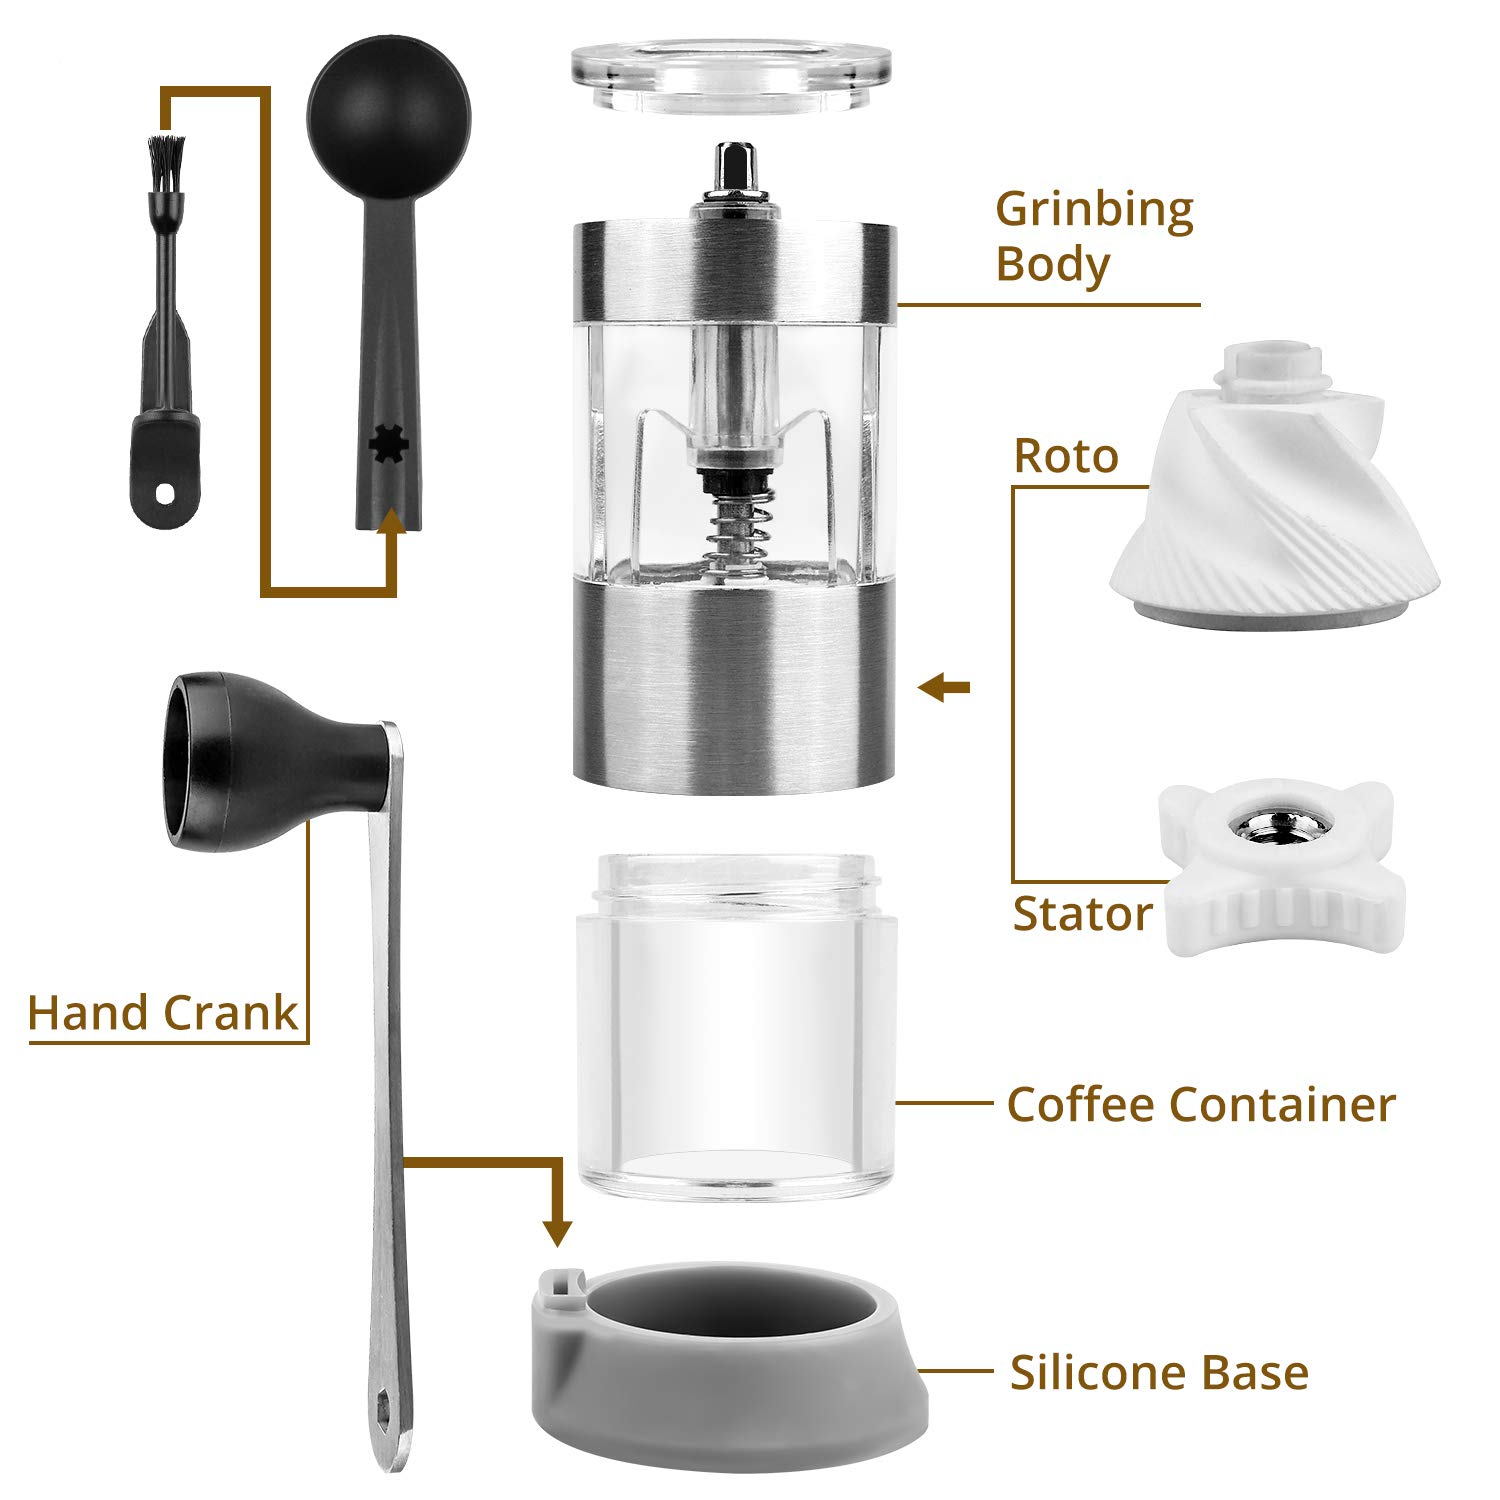 Manual Coffee Grinder with Adjustable Setting - Portable Coffee Grinder, Conical Ceramic Burr Mill for Camping, Travel, Picnics